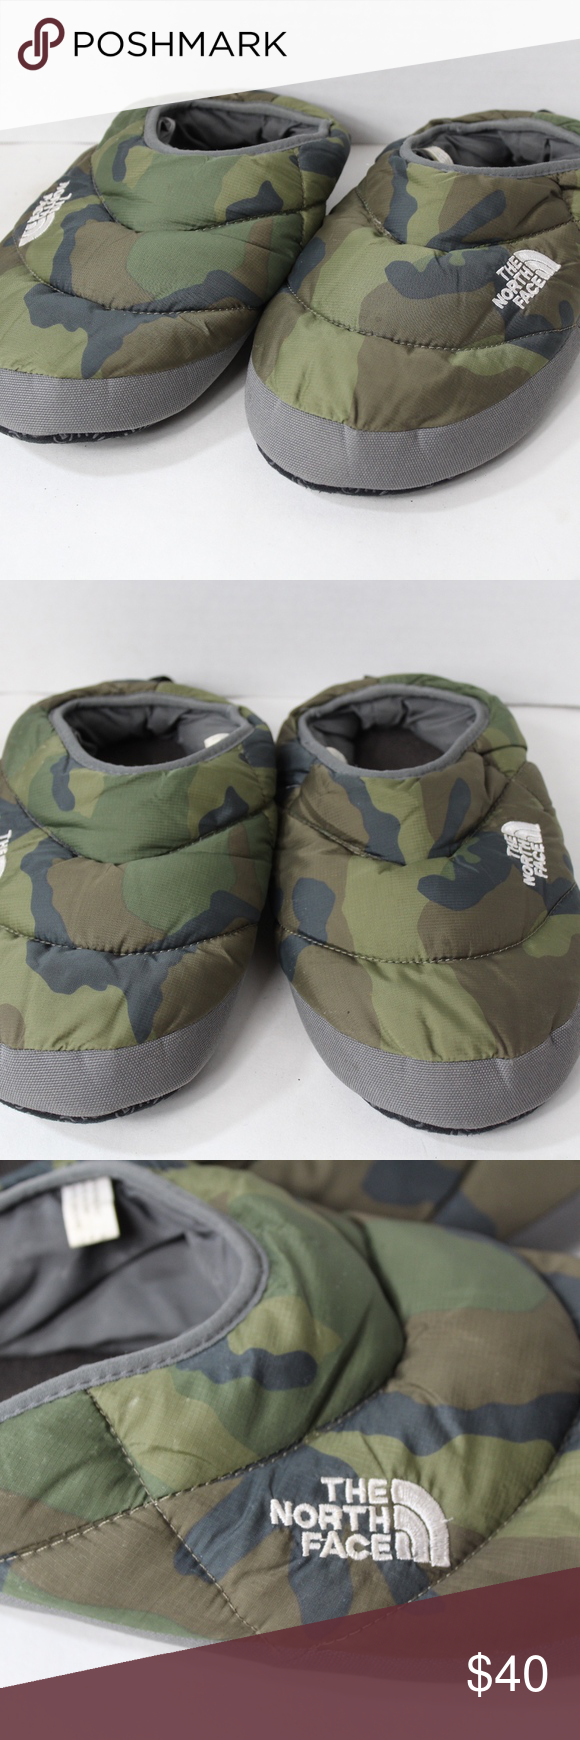 6cd1350e0 The North Face Mens Medium Goose Down Slippers The North Face Tent ...